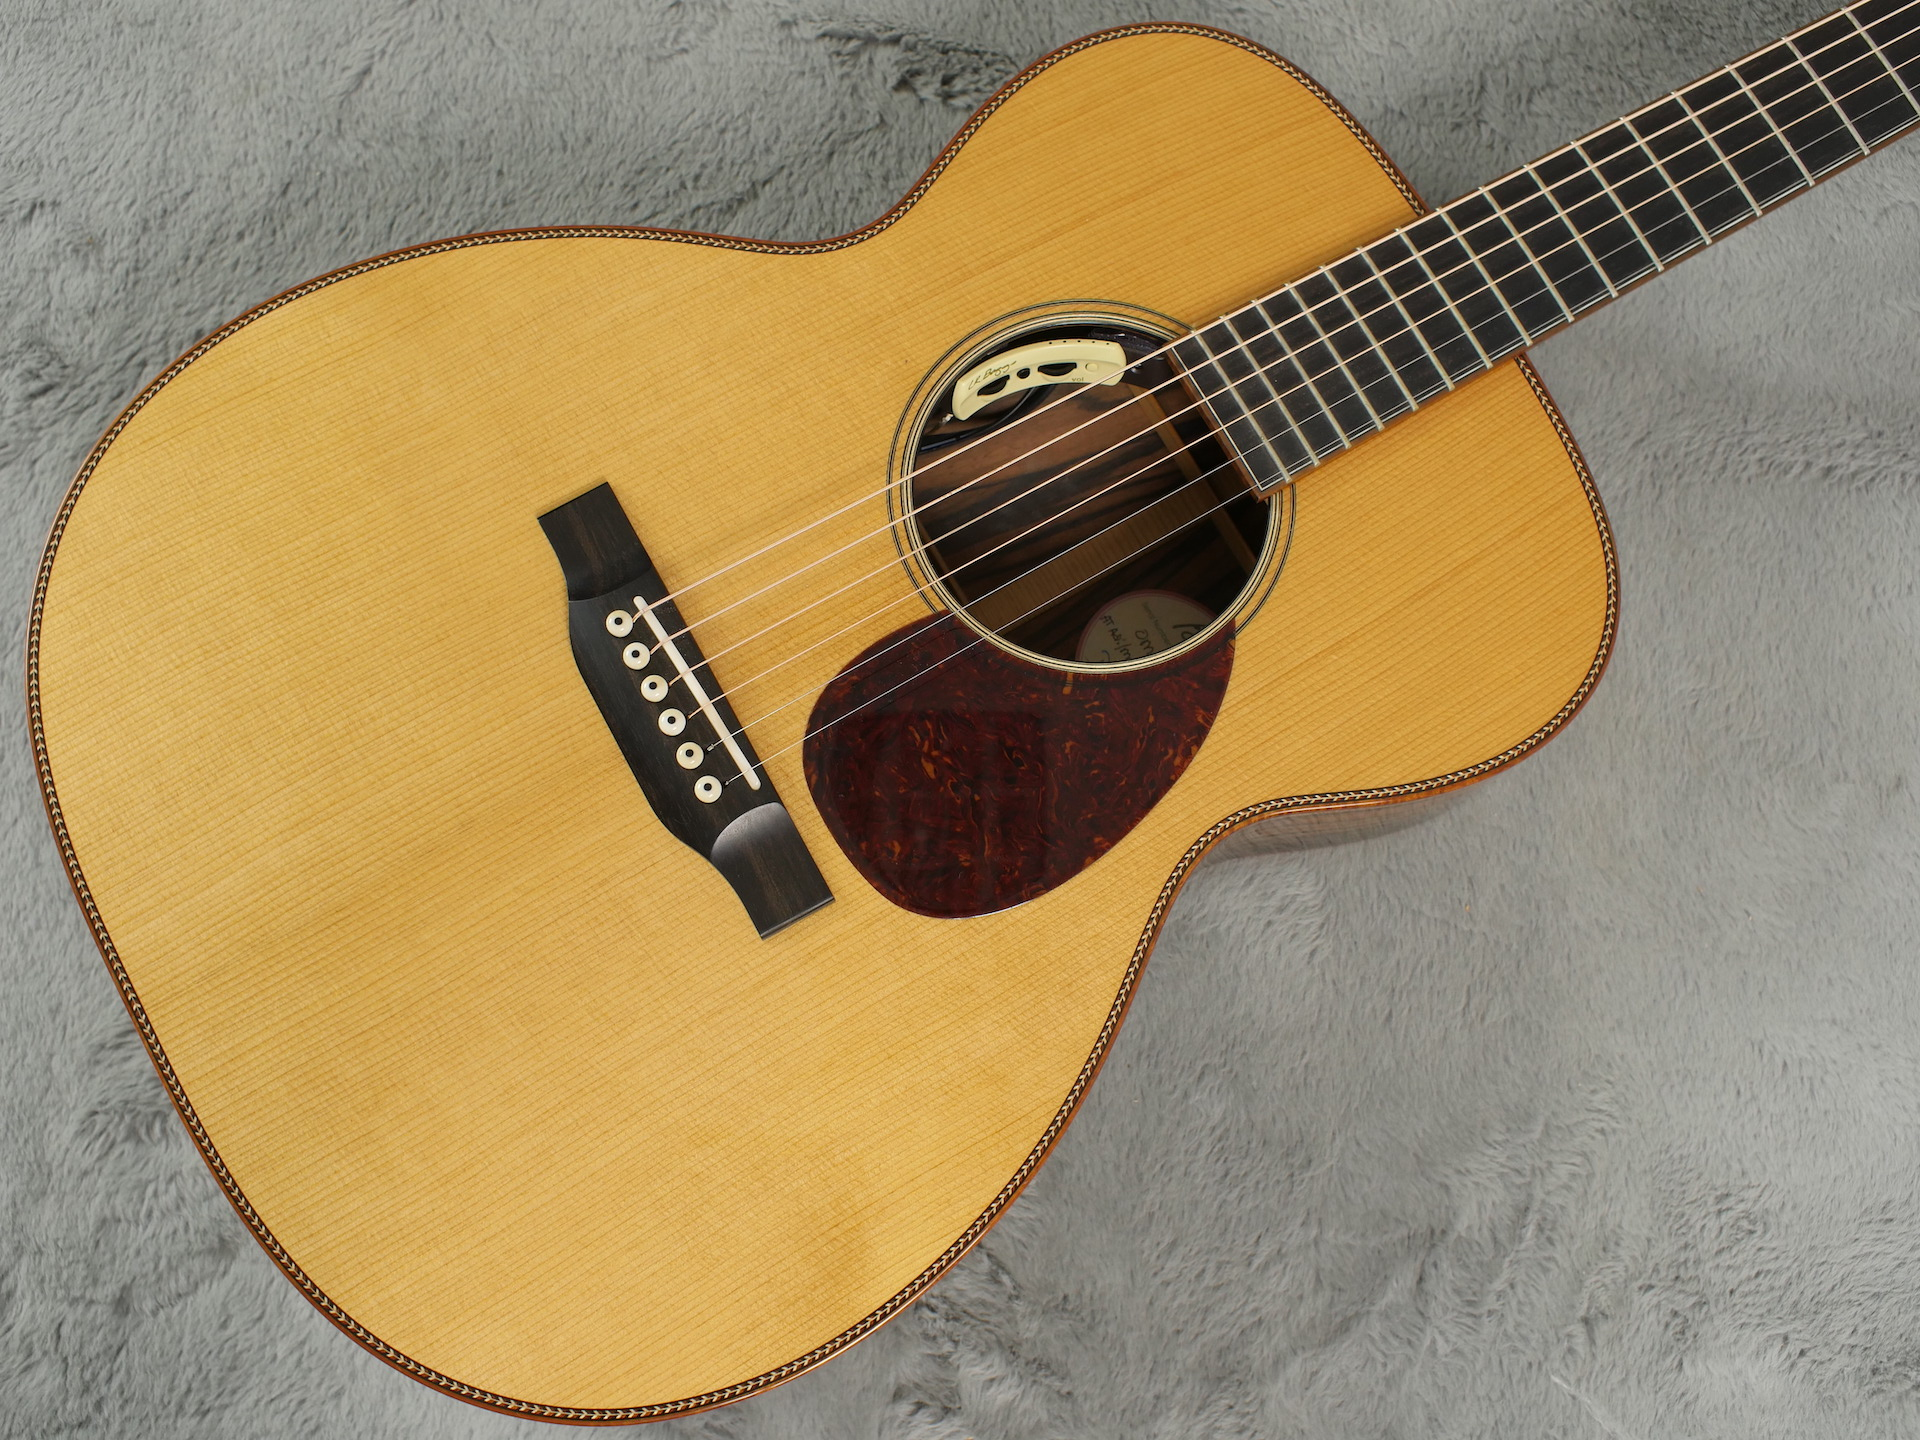 2016 Bourgeois OM Large Soundhole + OHSC